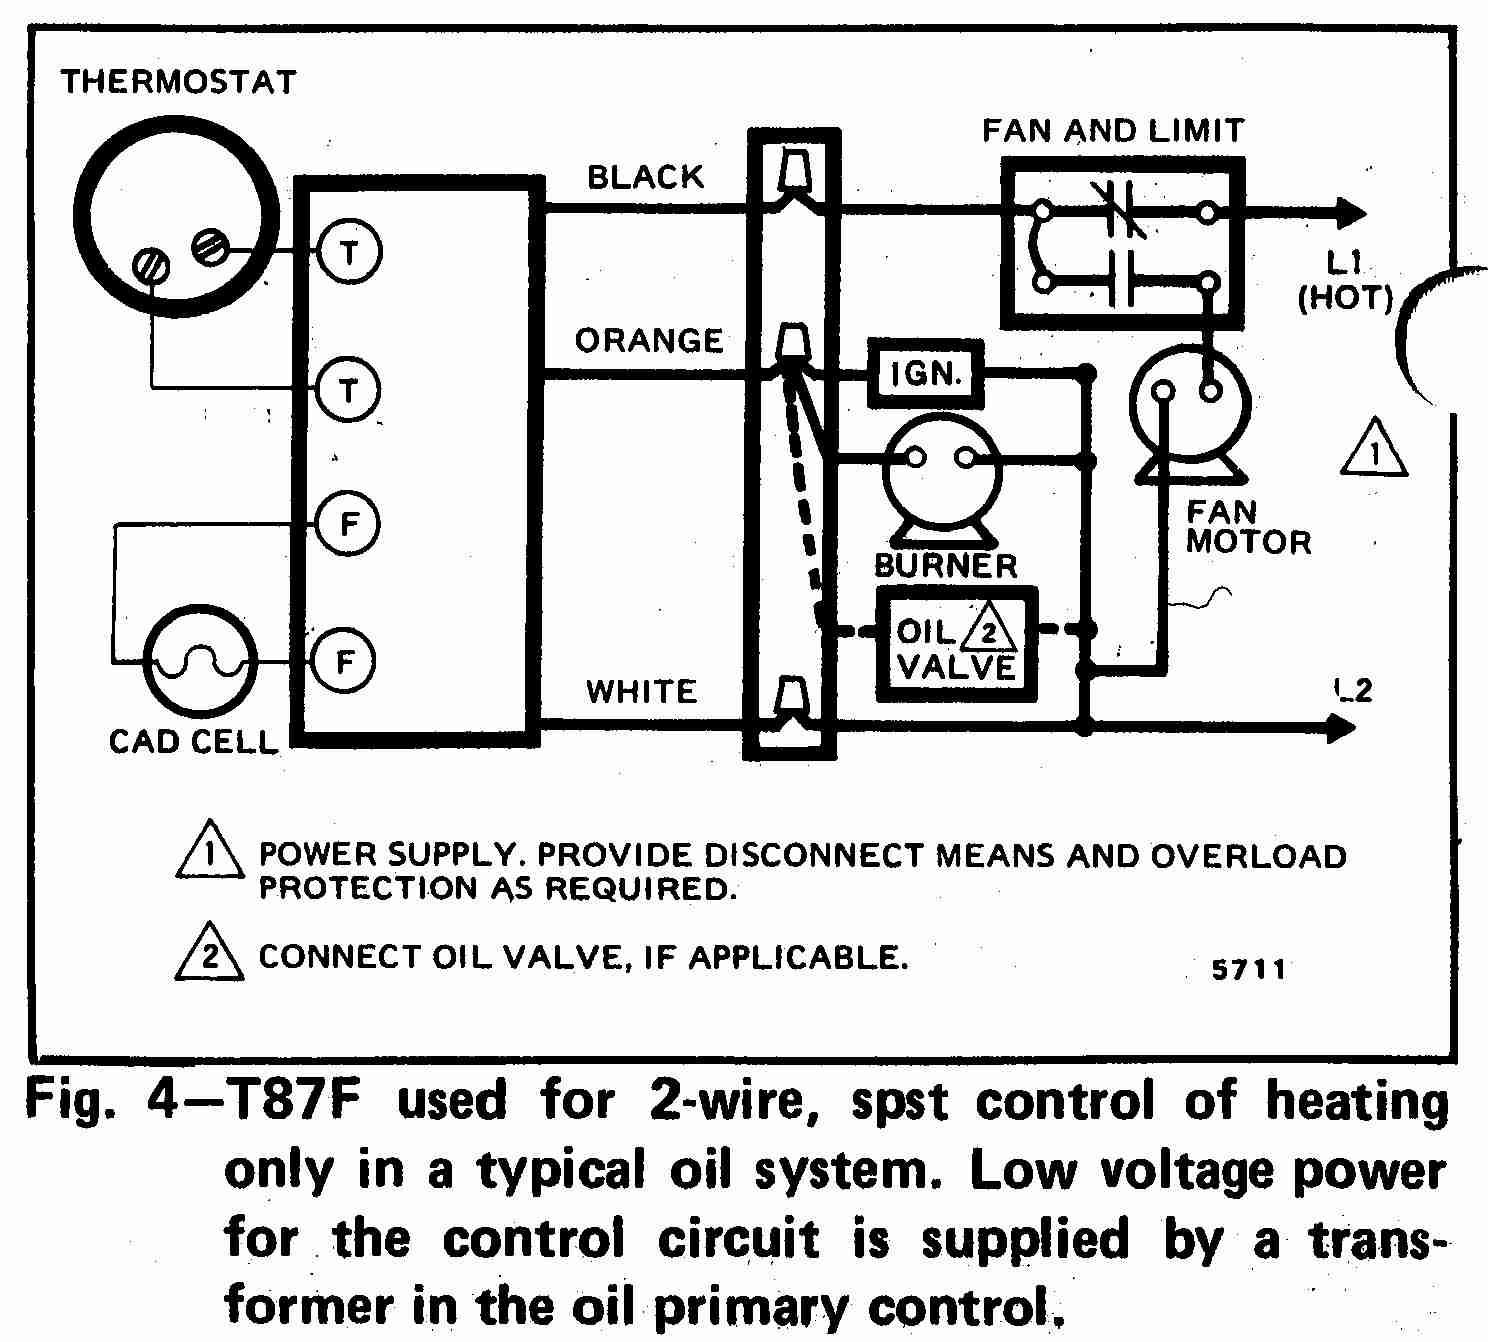 hight resolution of room thermostat wiring diagrams for hvac systems pressure washer wiring schematic thermostat honeywell t87f thermostat wiring coleman furnace